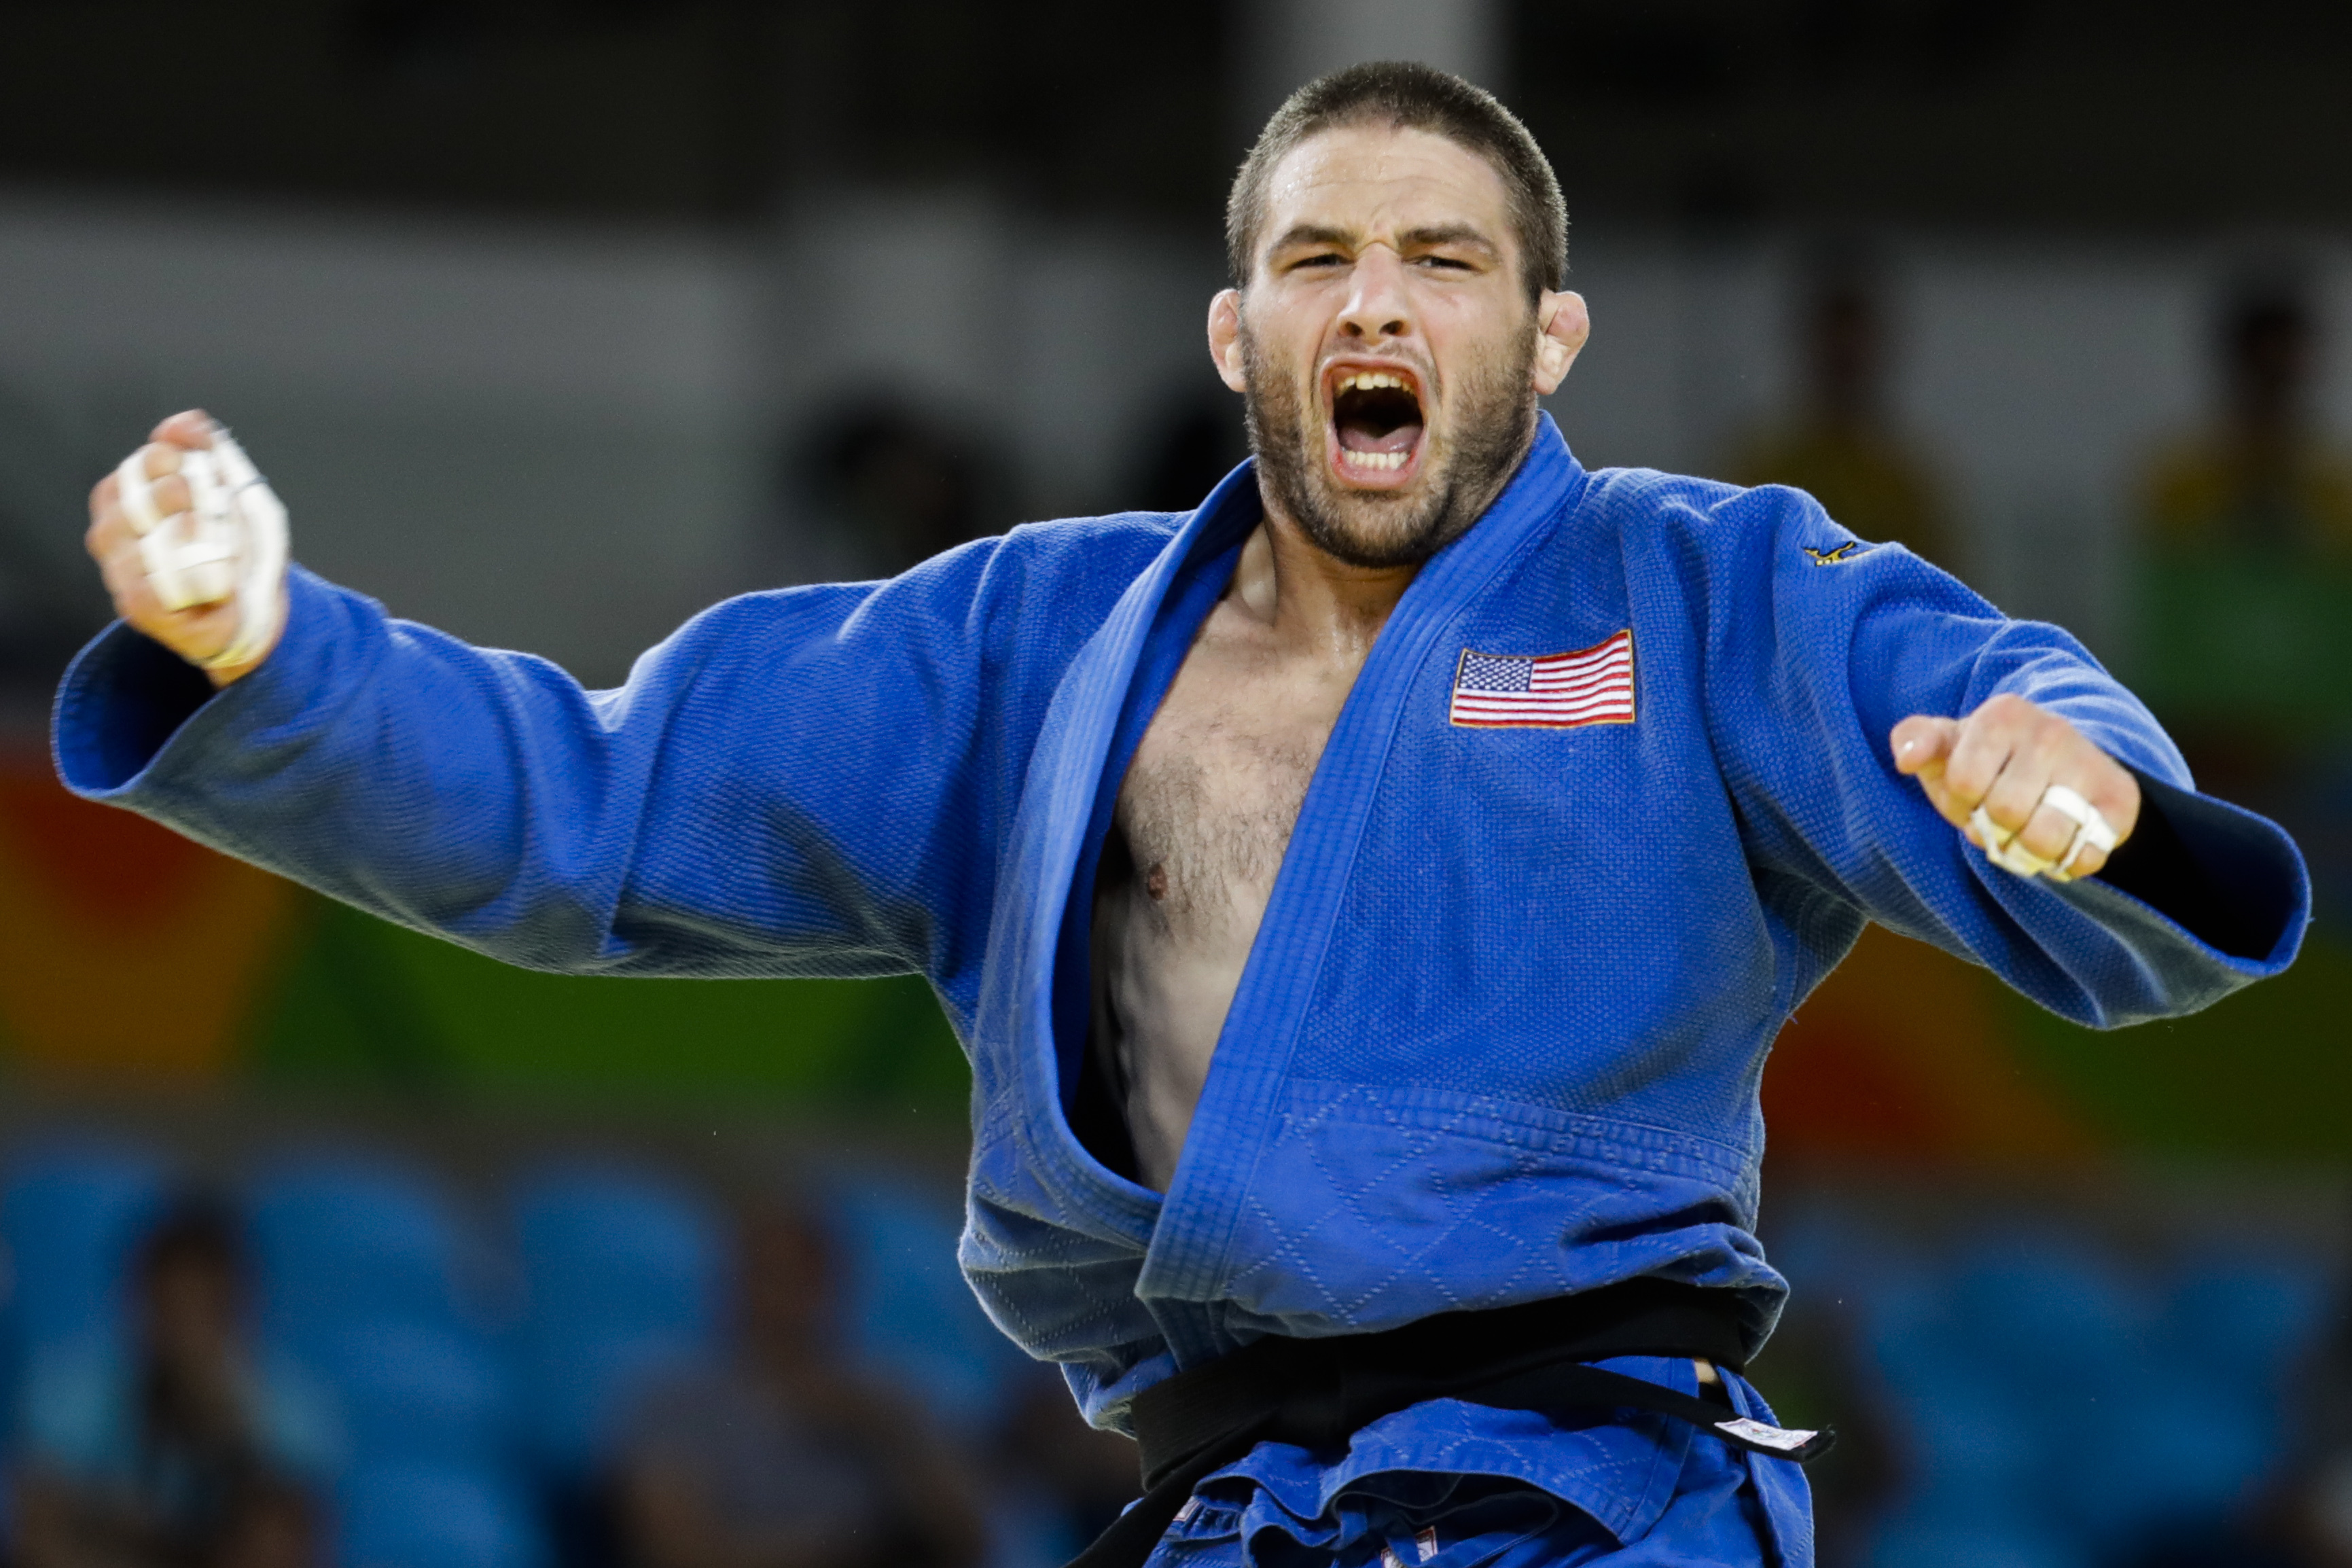 United States' Travis Stevens reacts after winning the semi-final of the men's 81-kg judo competition at the 2016 Summer Olympics in Rio de Janeiro, Brazil, Tuesday, Aug. 9, 2016. (AP Photo/Markus Schreiber)